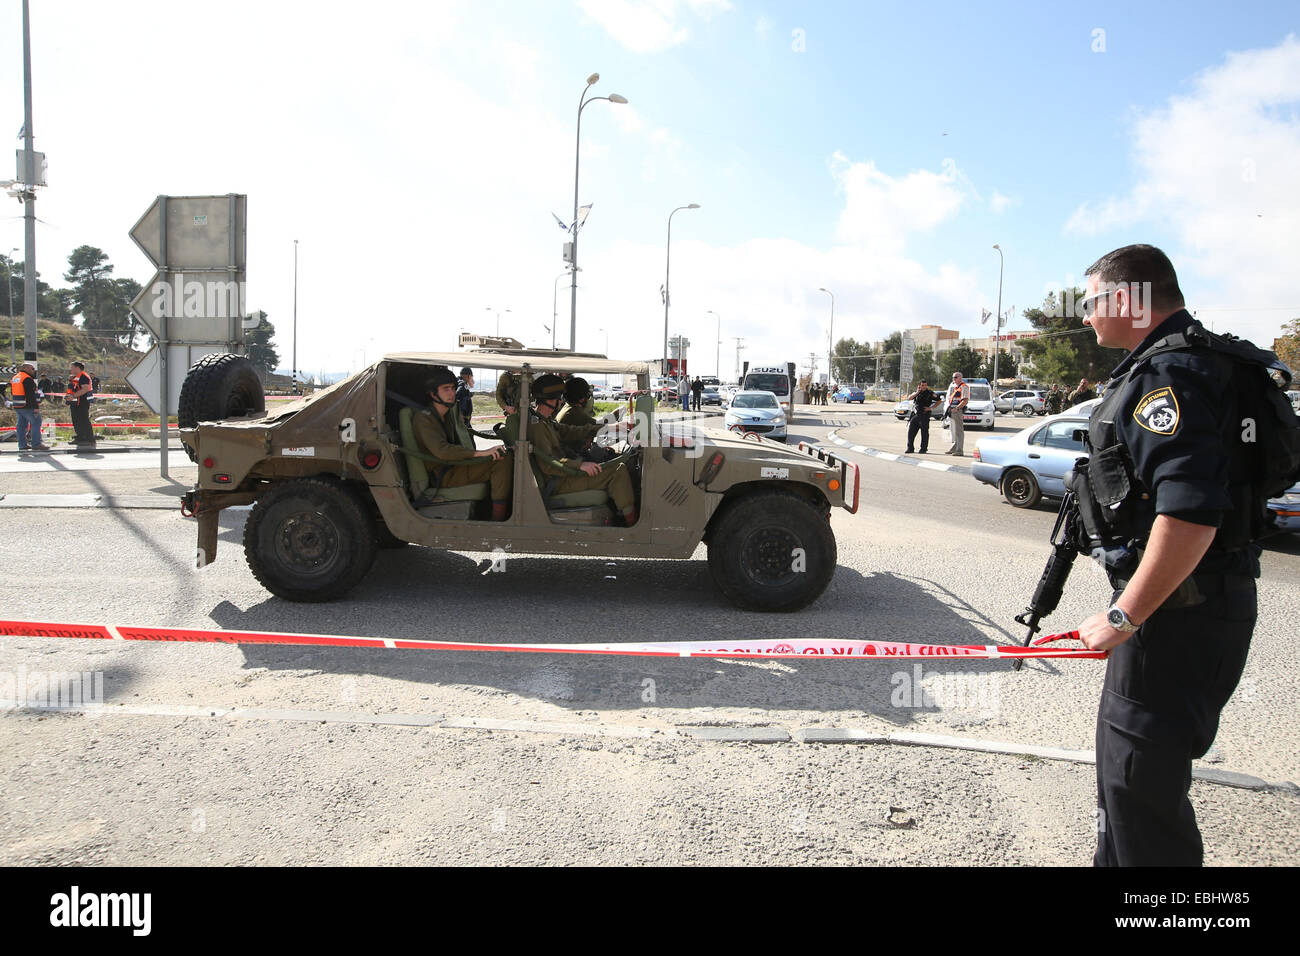 Jerusalem. 1st Dec, 2014. Israeli police and soldiers are seen on the site of an alleged stabbing attack outside - Stock Image